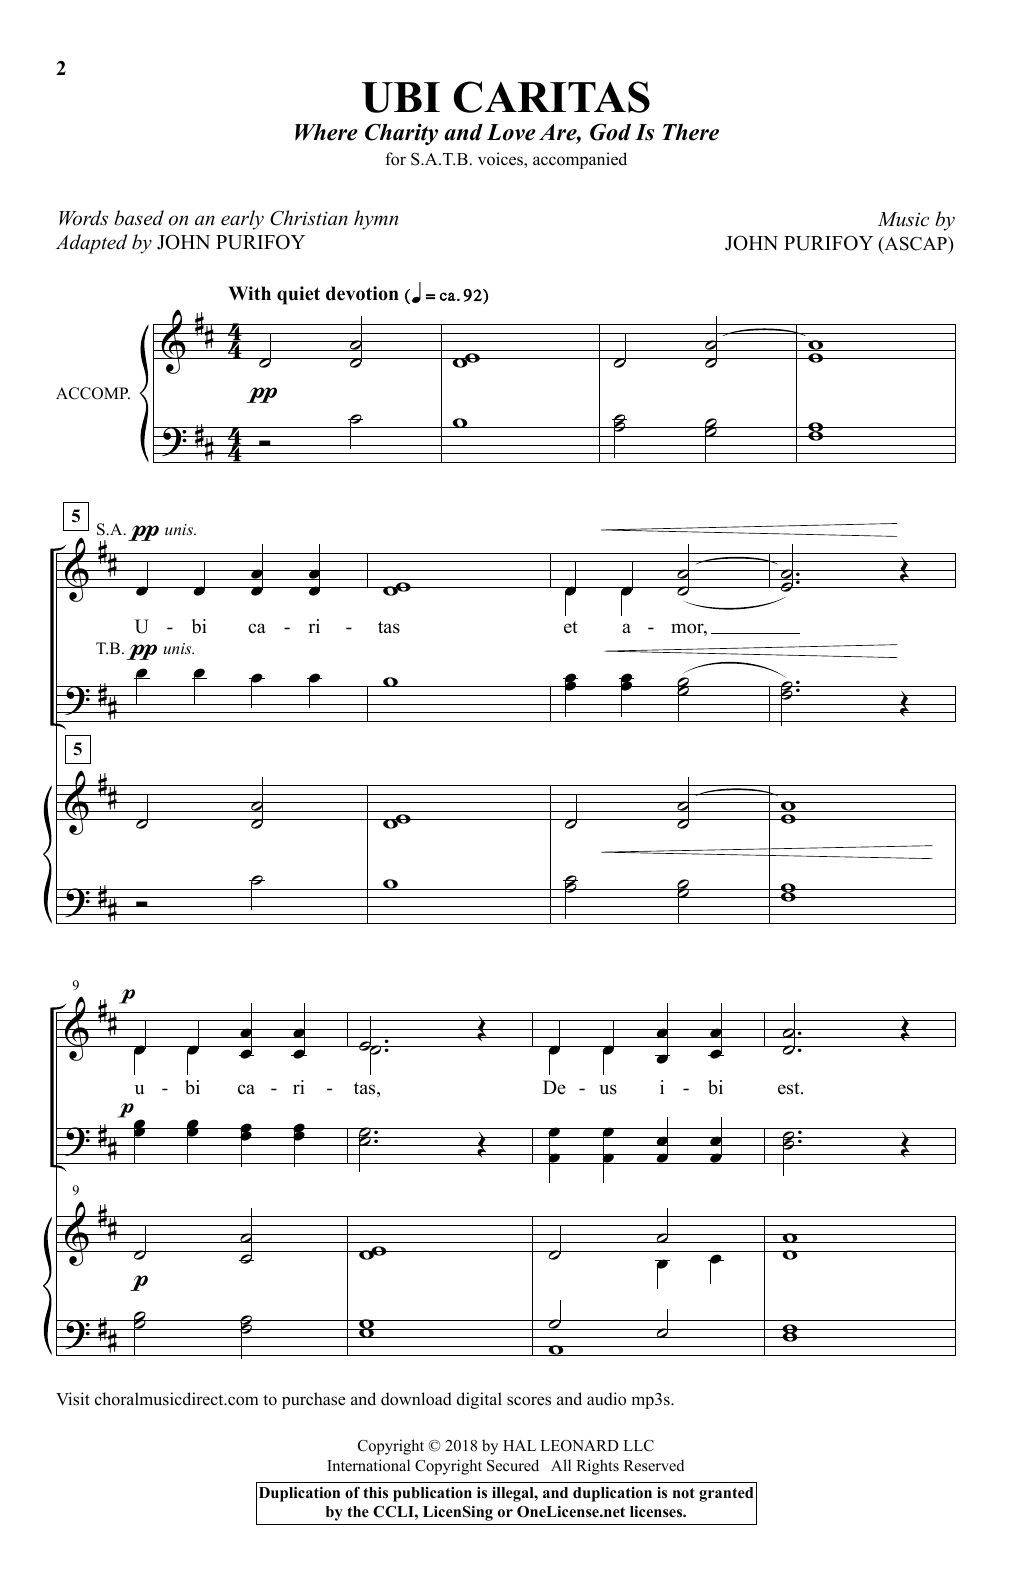 Ubi Caritas (Where Charity And Love Are, God Is There) Sheet Music